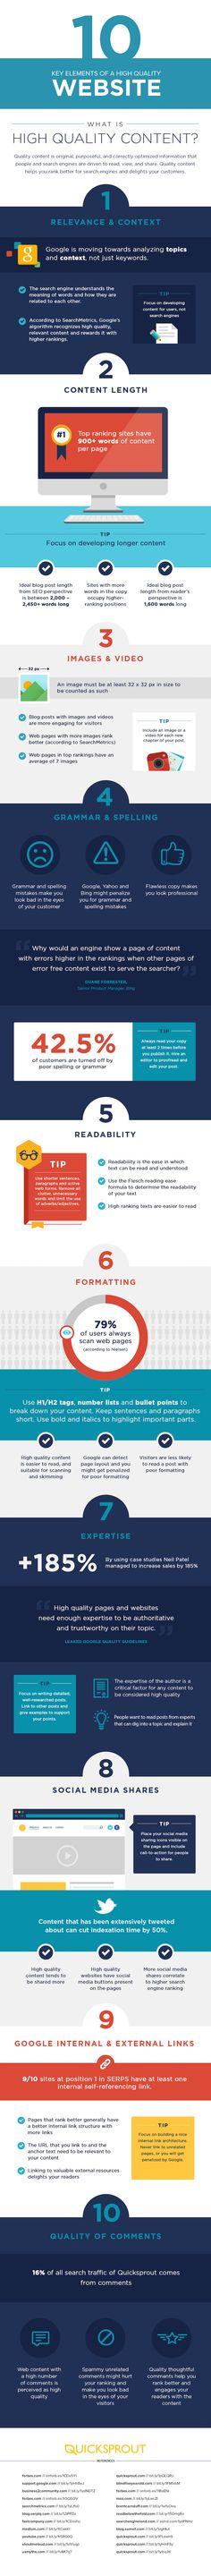 The 10 Key Elements of a High Quality #Website #webdesign [ #infographic ]